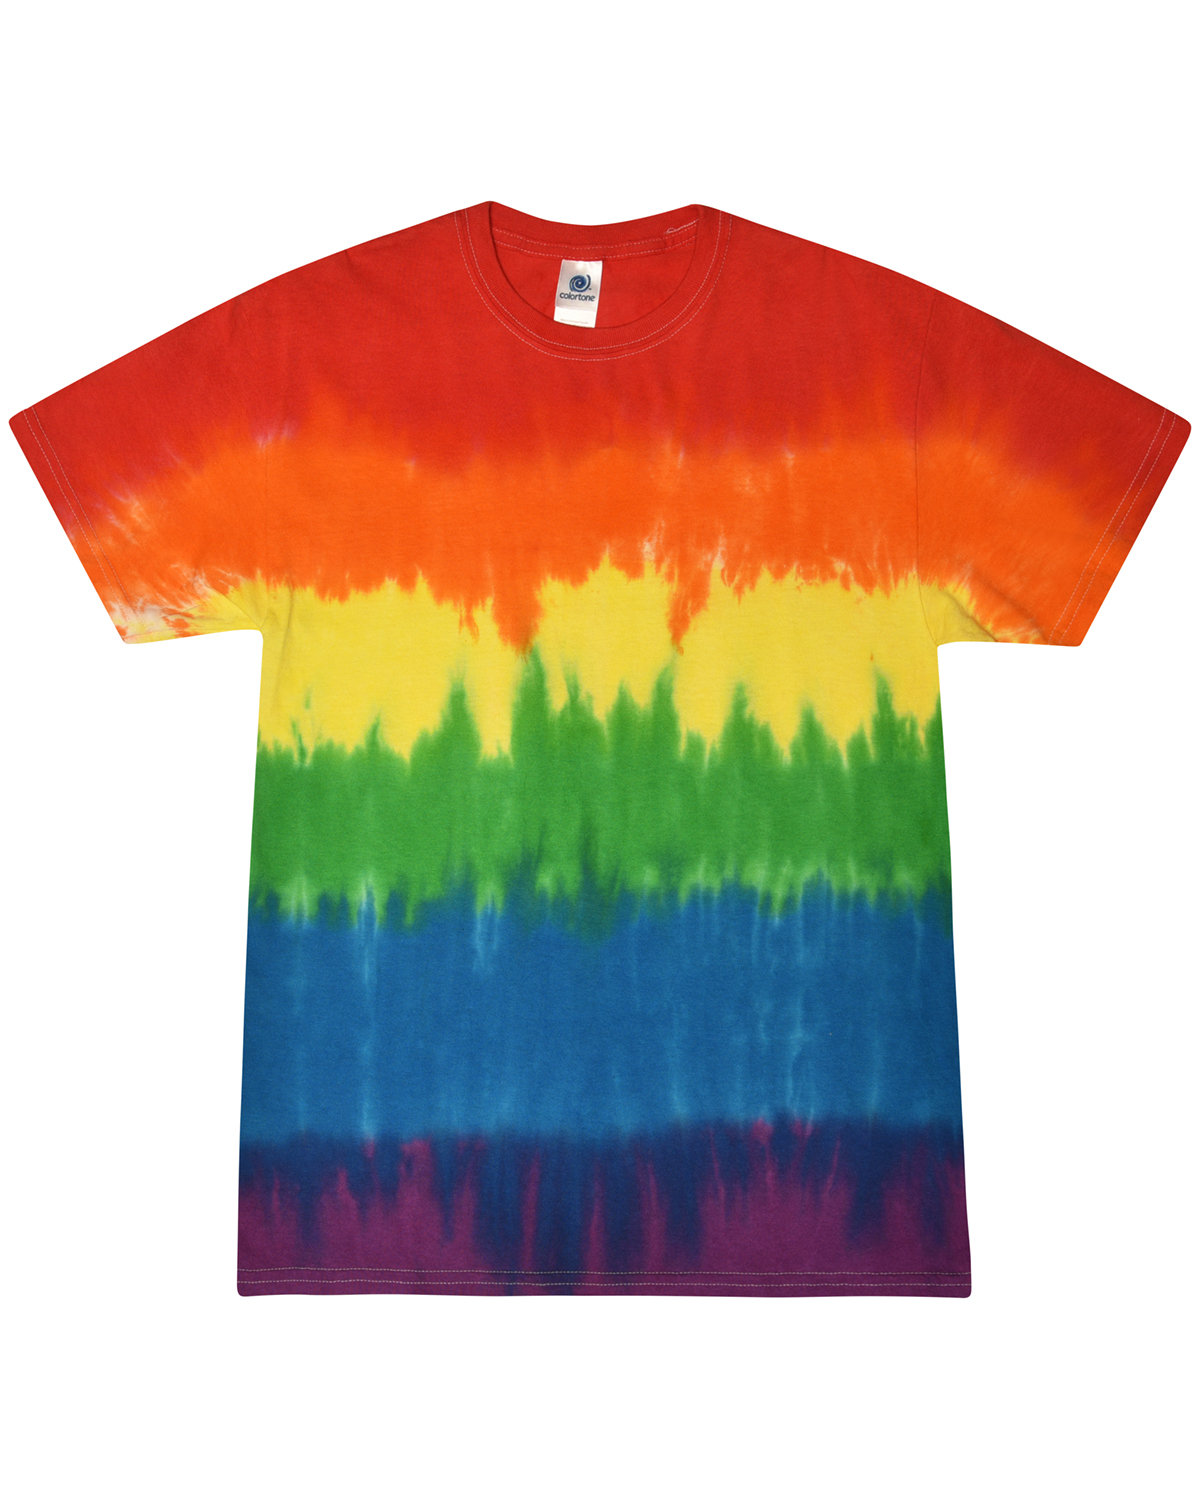 Tie-Dye Adult 5.4 oz., 100% Cotton T-Shirt PRIDE